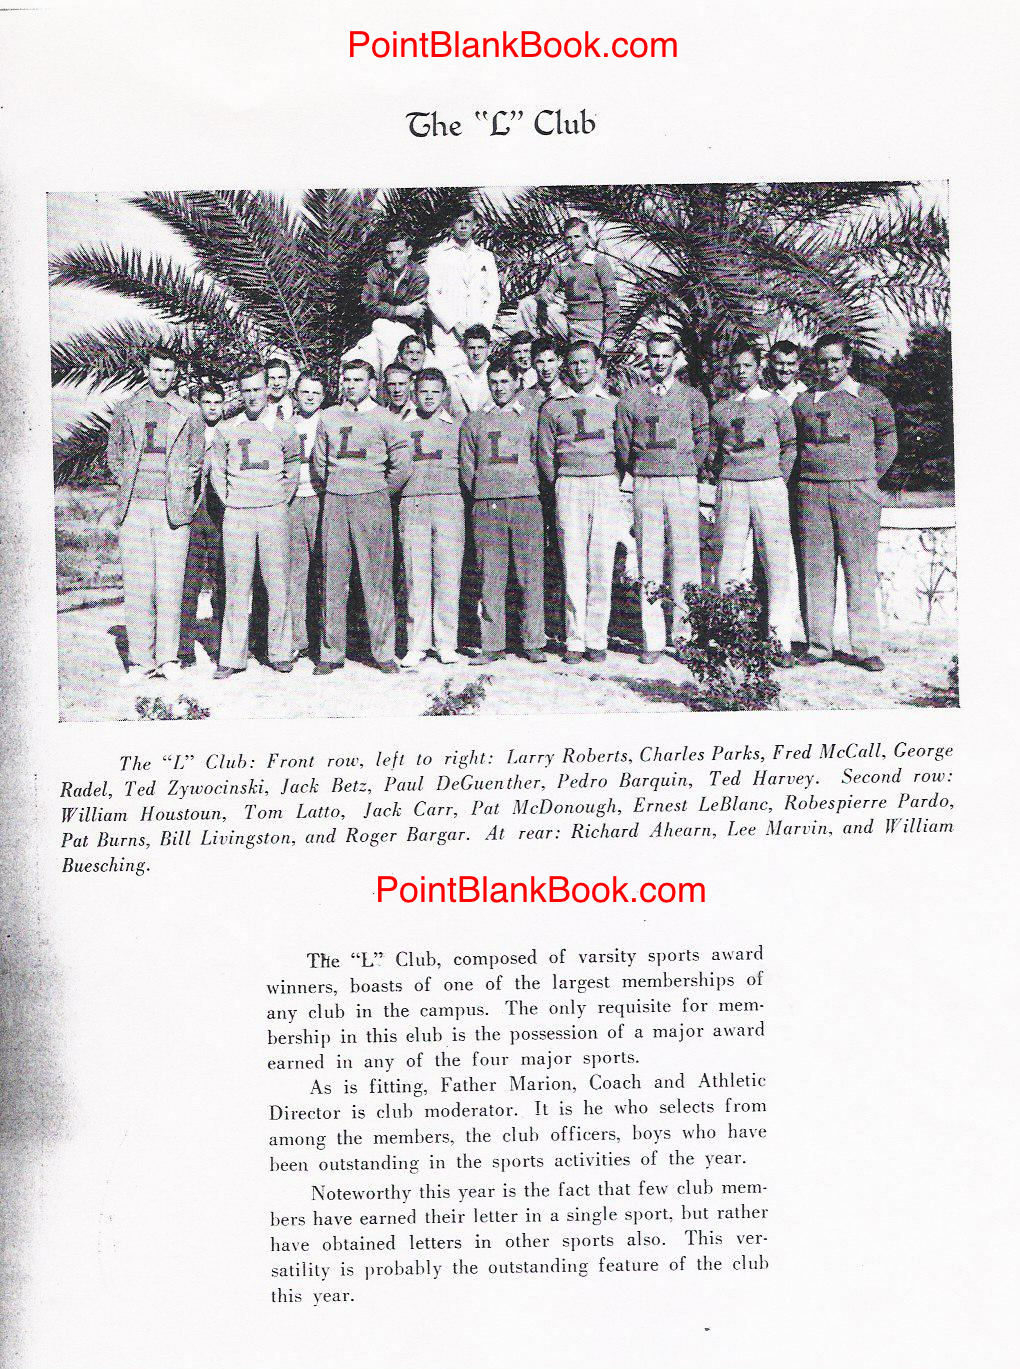 1942 St. Leo yearbook shows Lee Marvin (top of photo in summer suit) eanred his track letter.